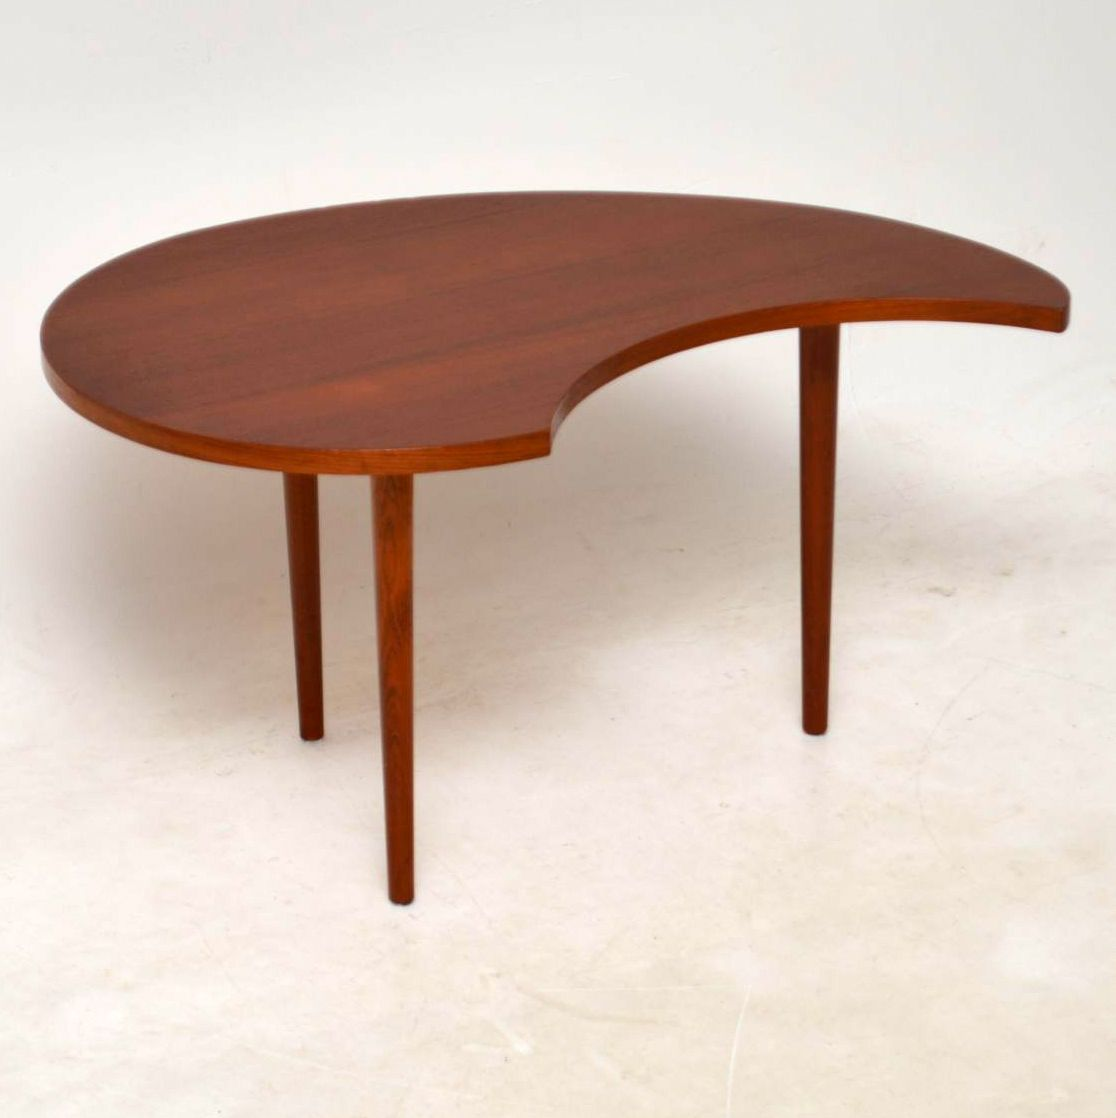 Vintage Teak Coffee Tables: 1960's Danish Teak Vintage Coffee Table